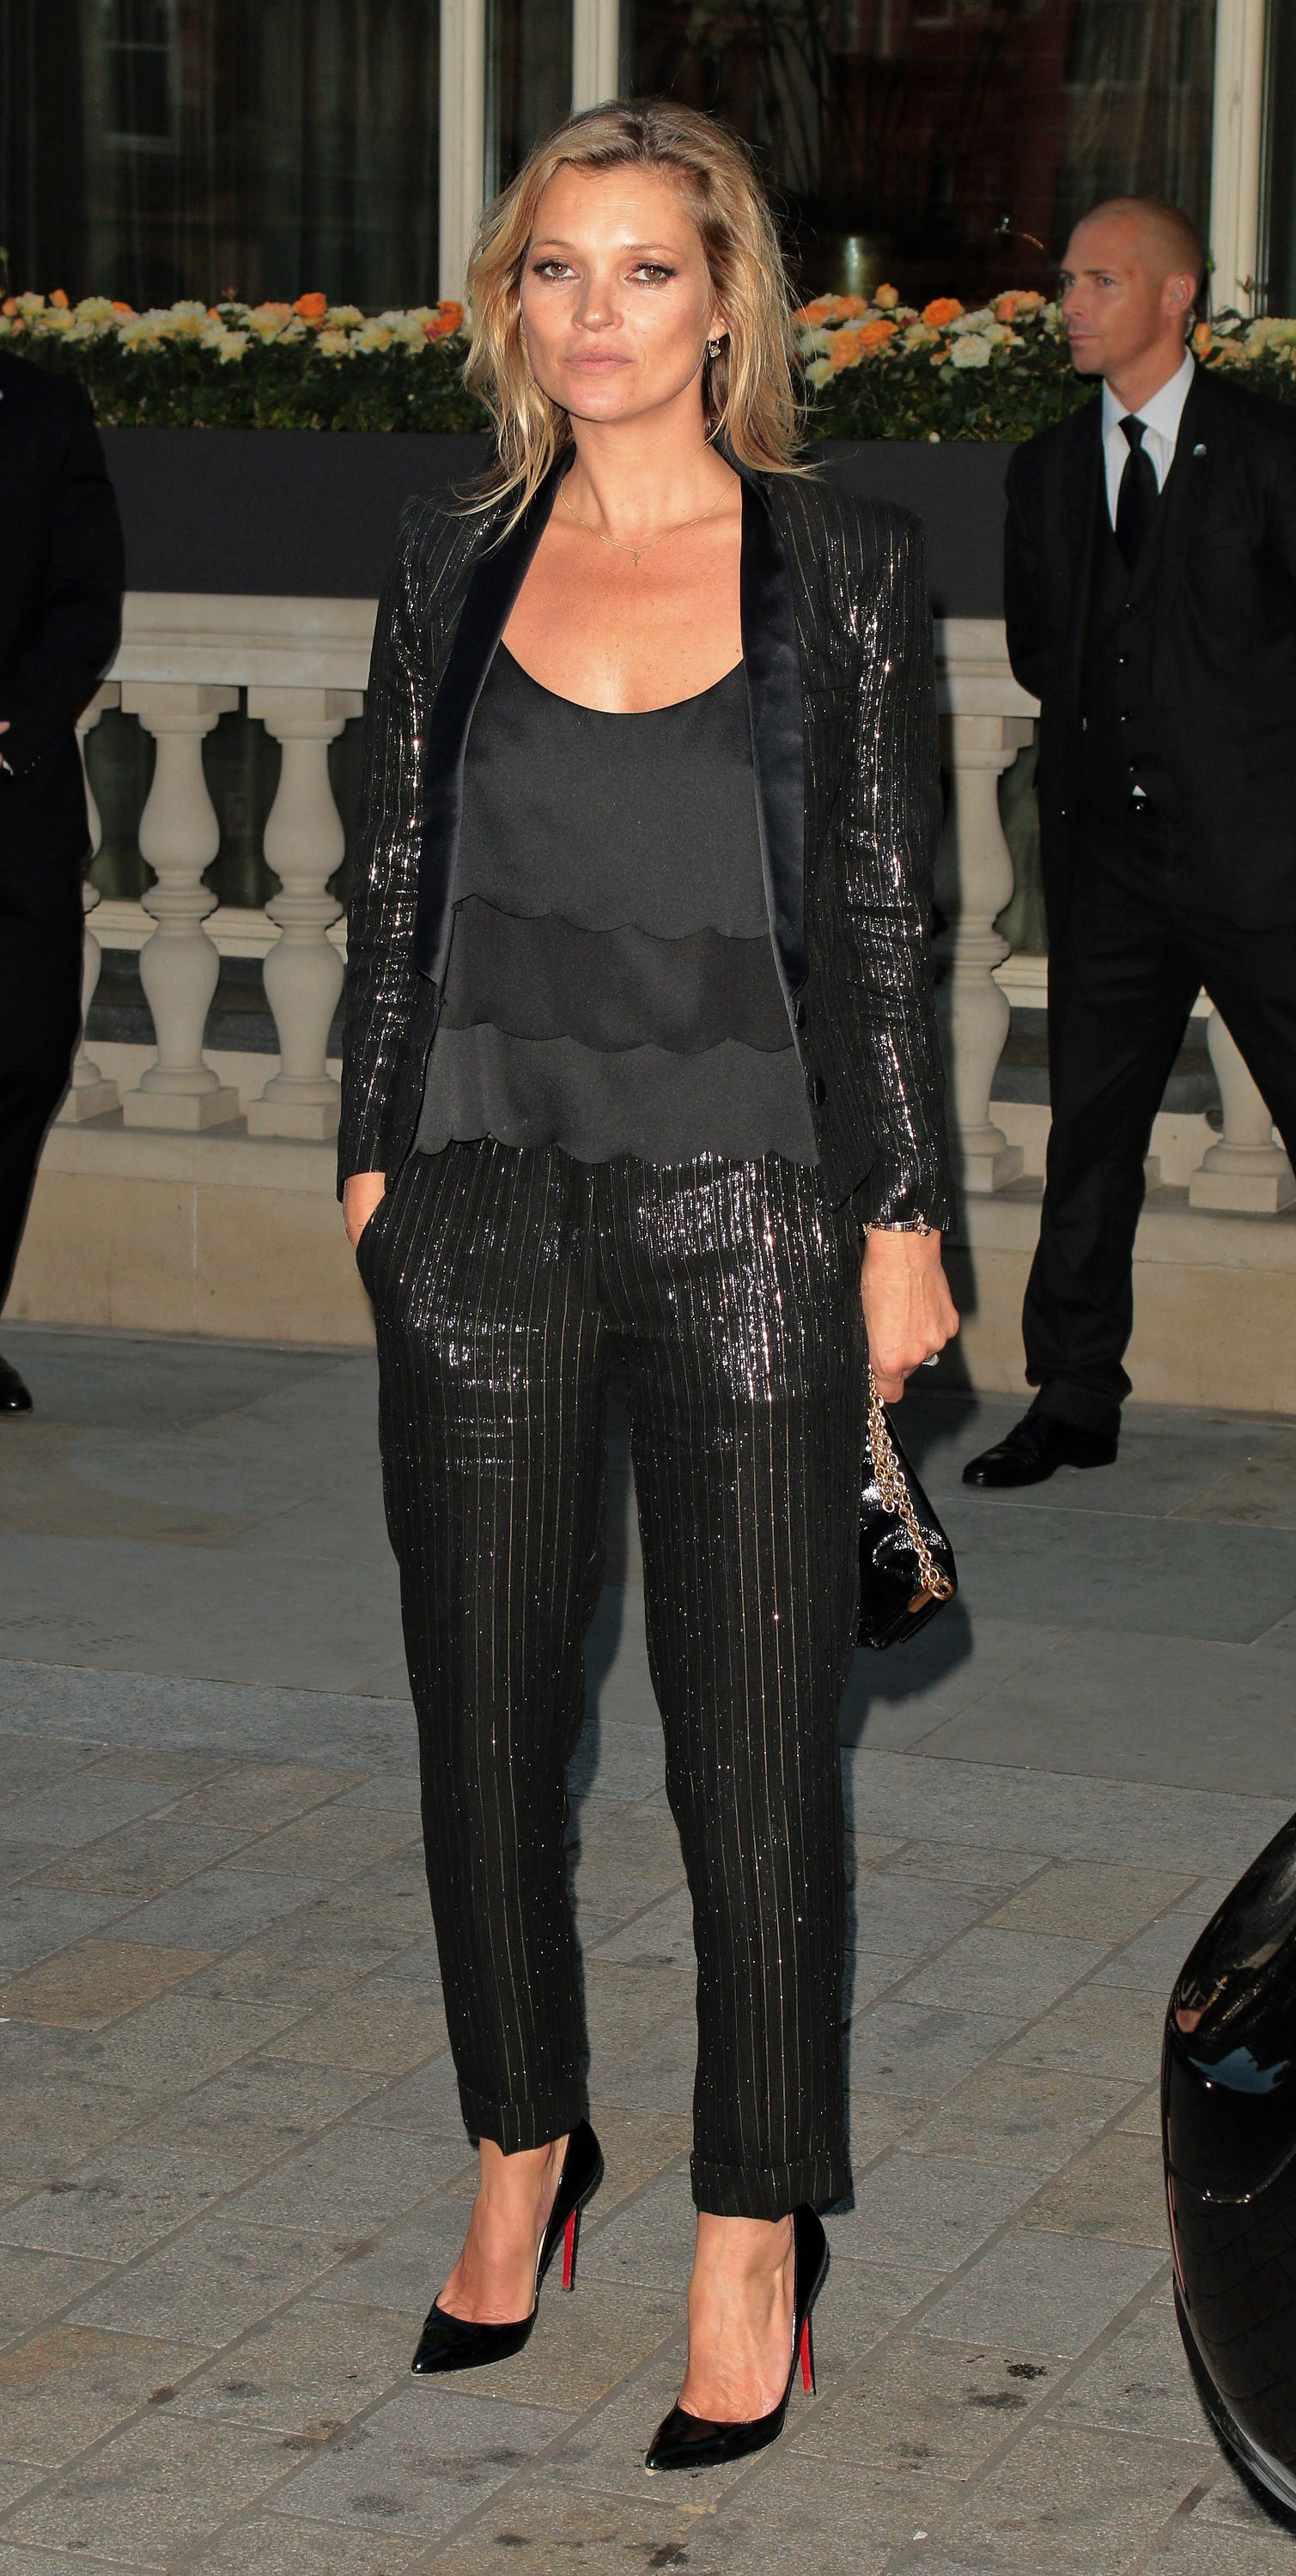 pics for gt kate moss street style 2013